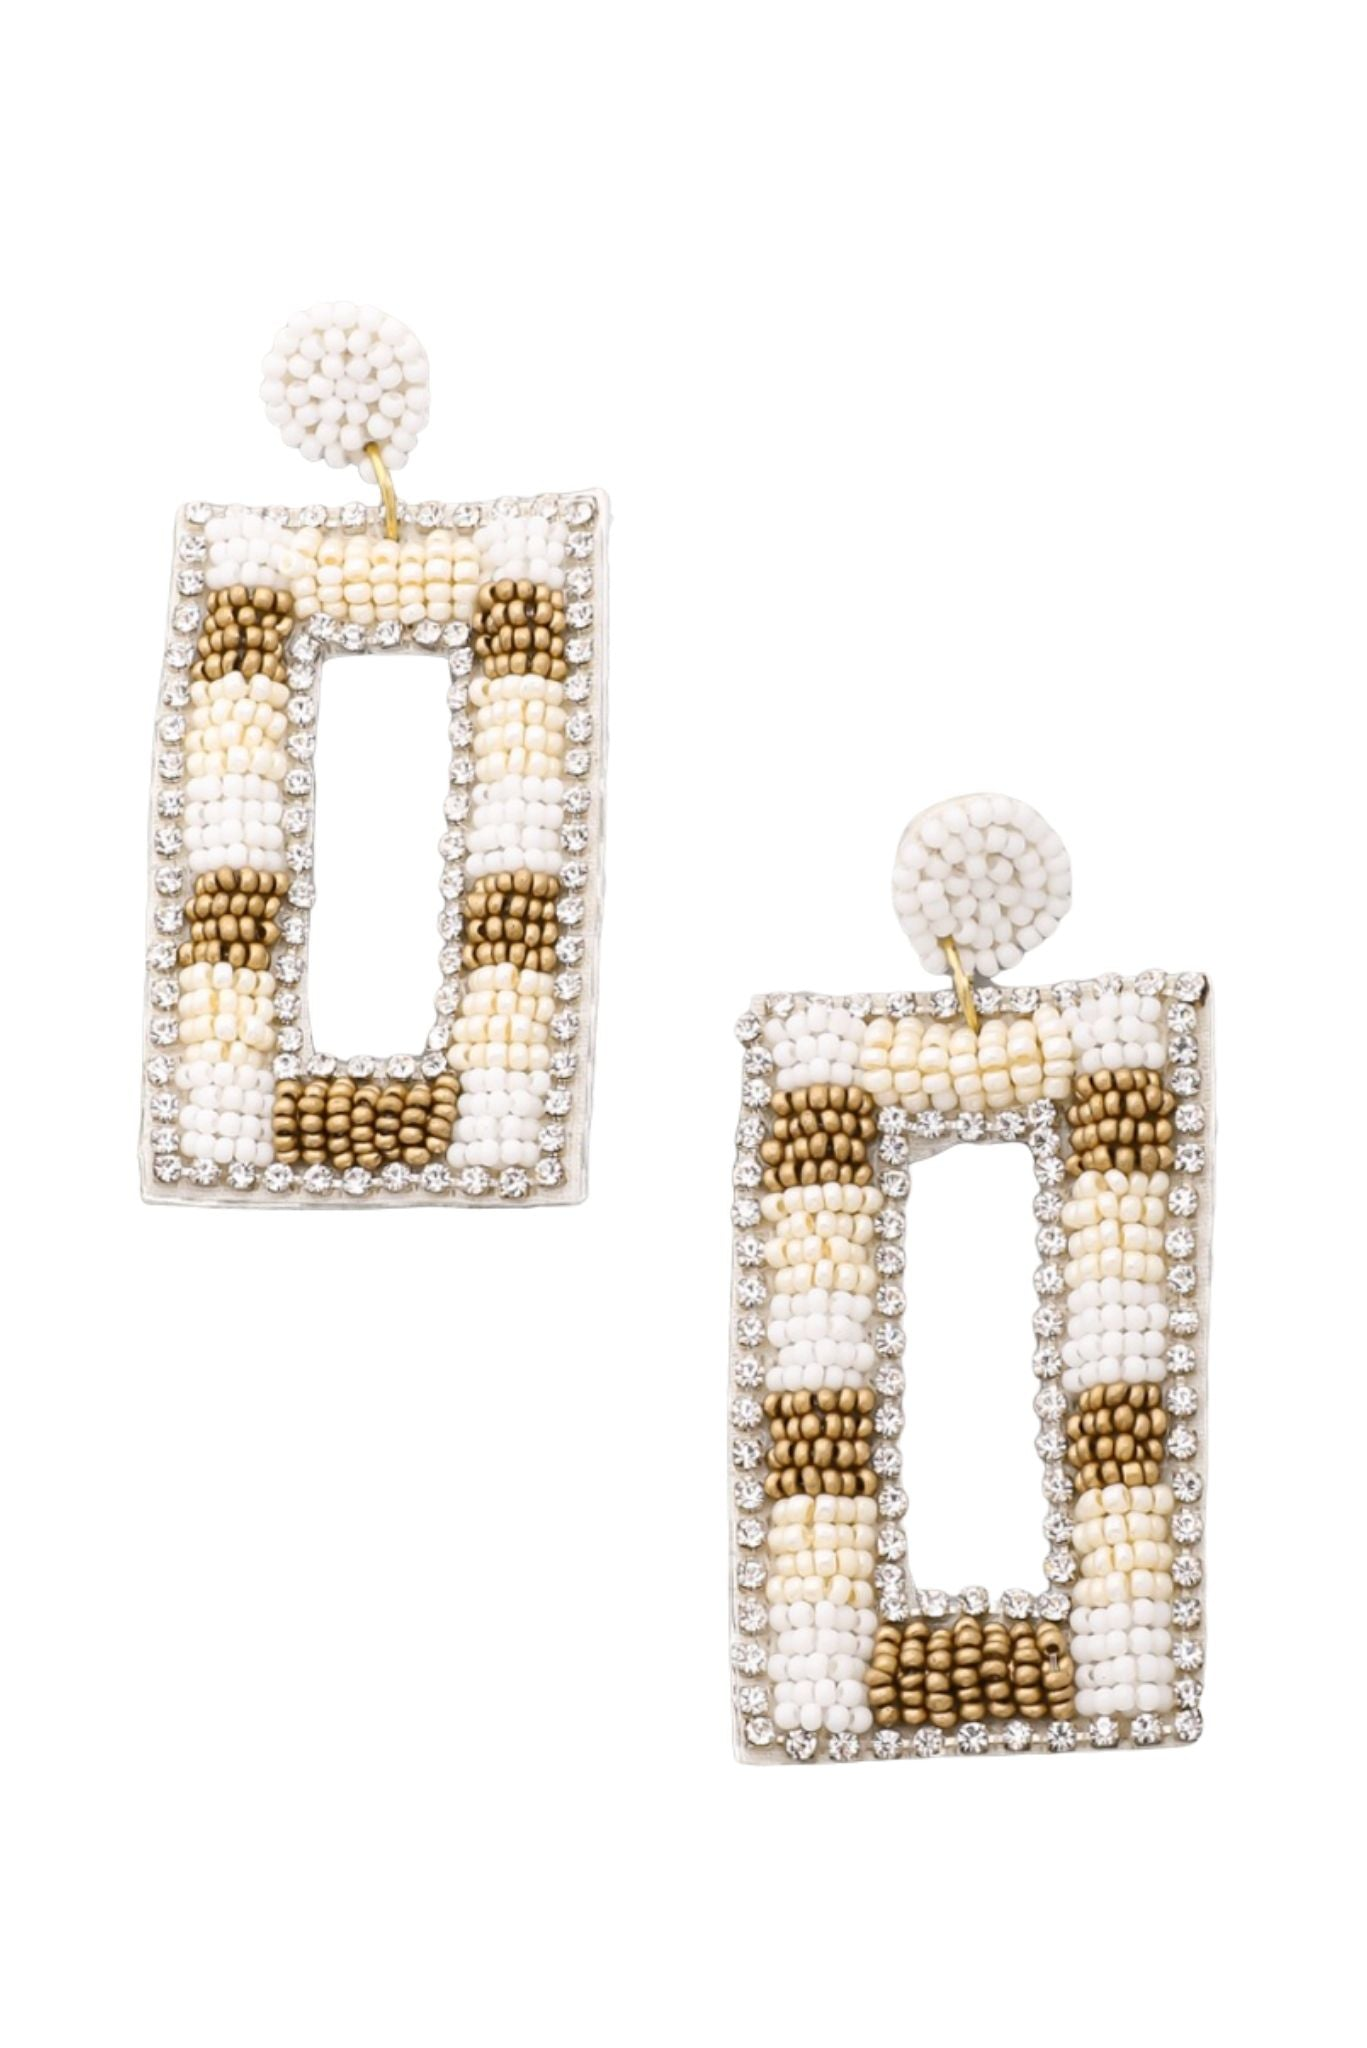 Ivory and Gold Beaded Rectangle Earrings